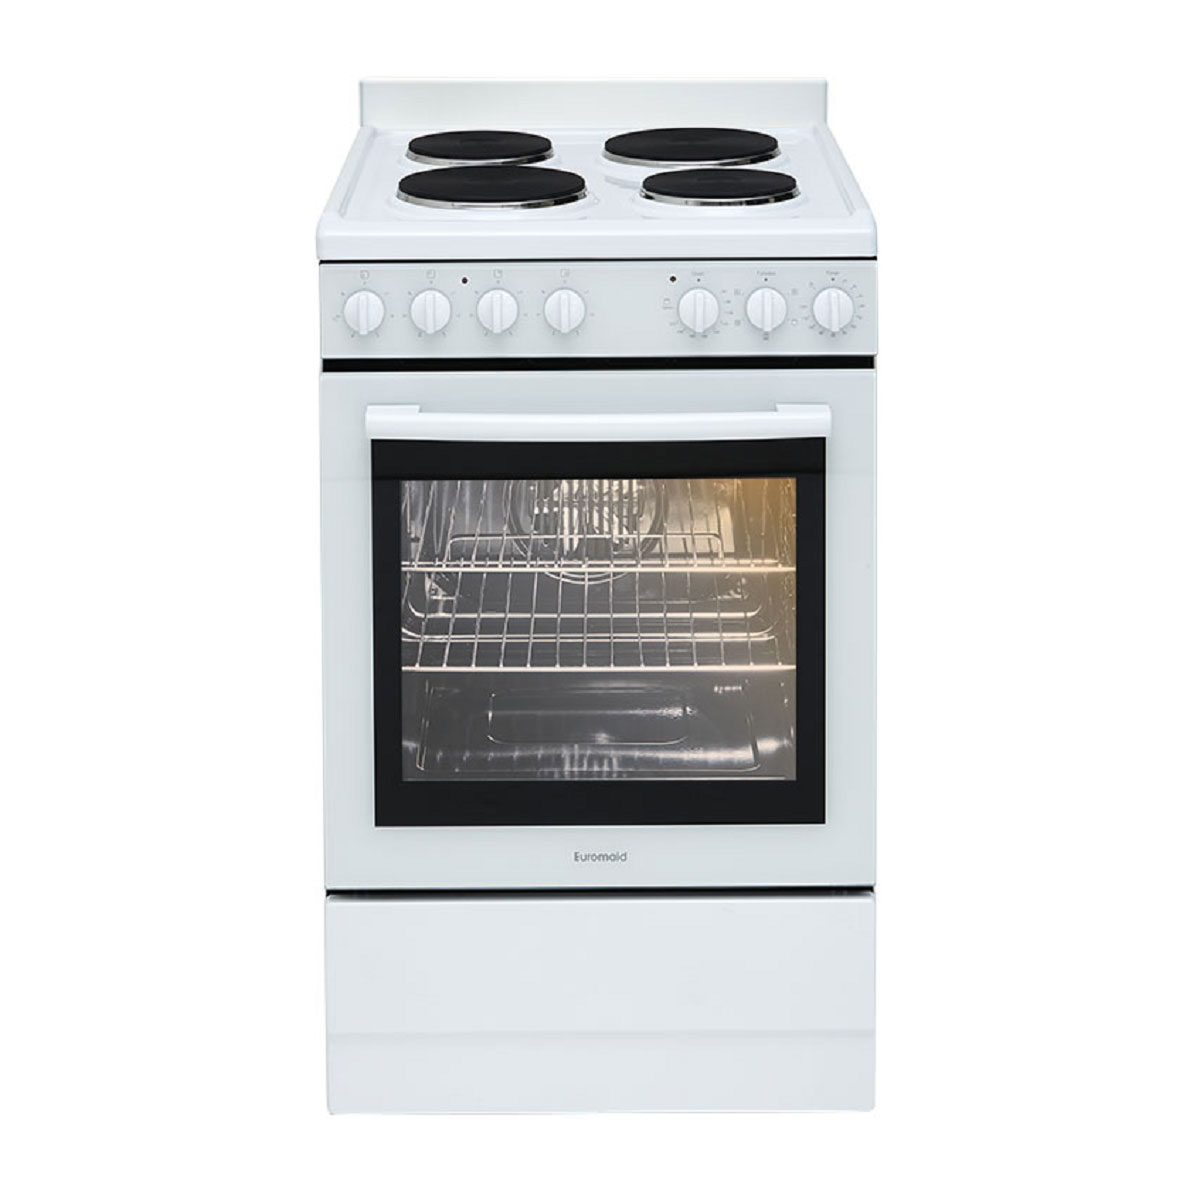 Euromaid EFF54W Freestanding Electric Oven/Stove